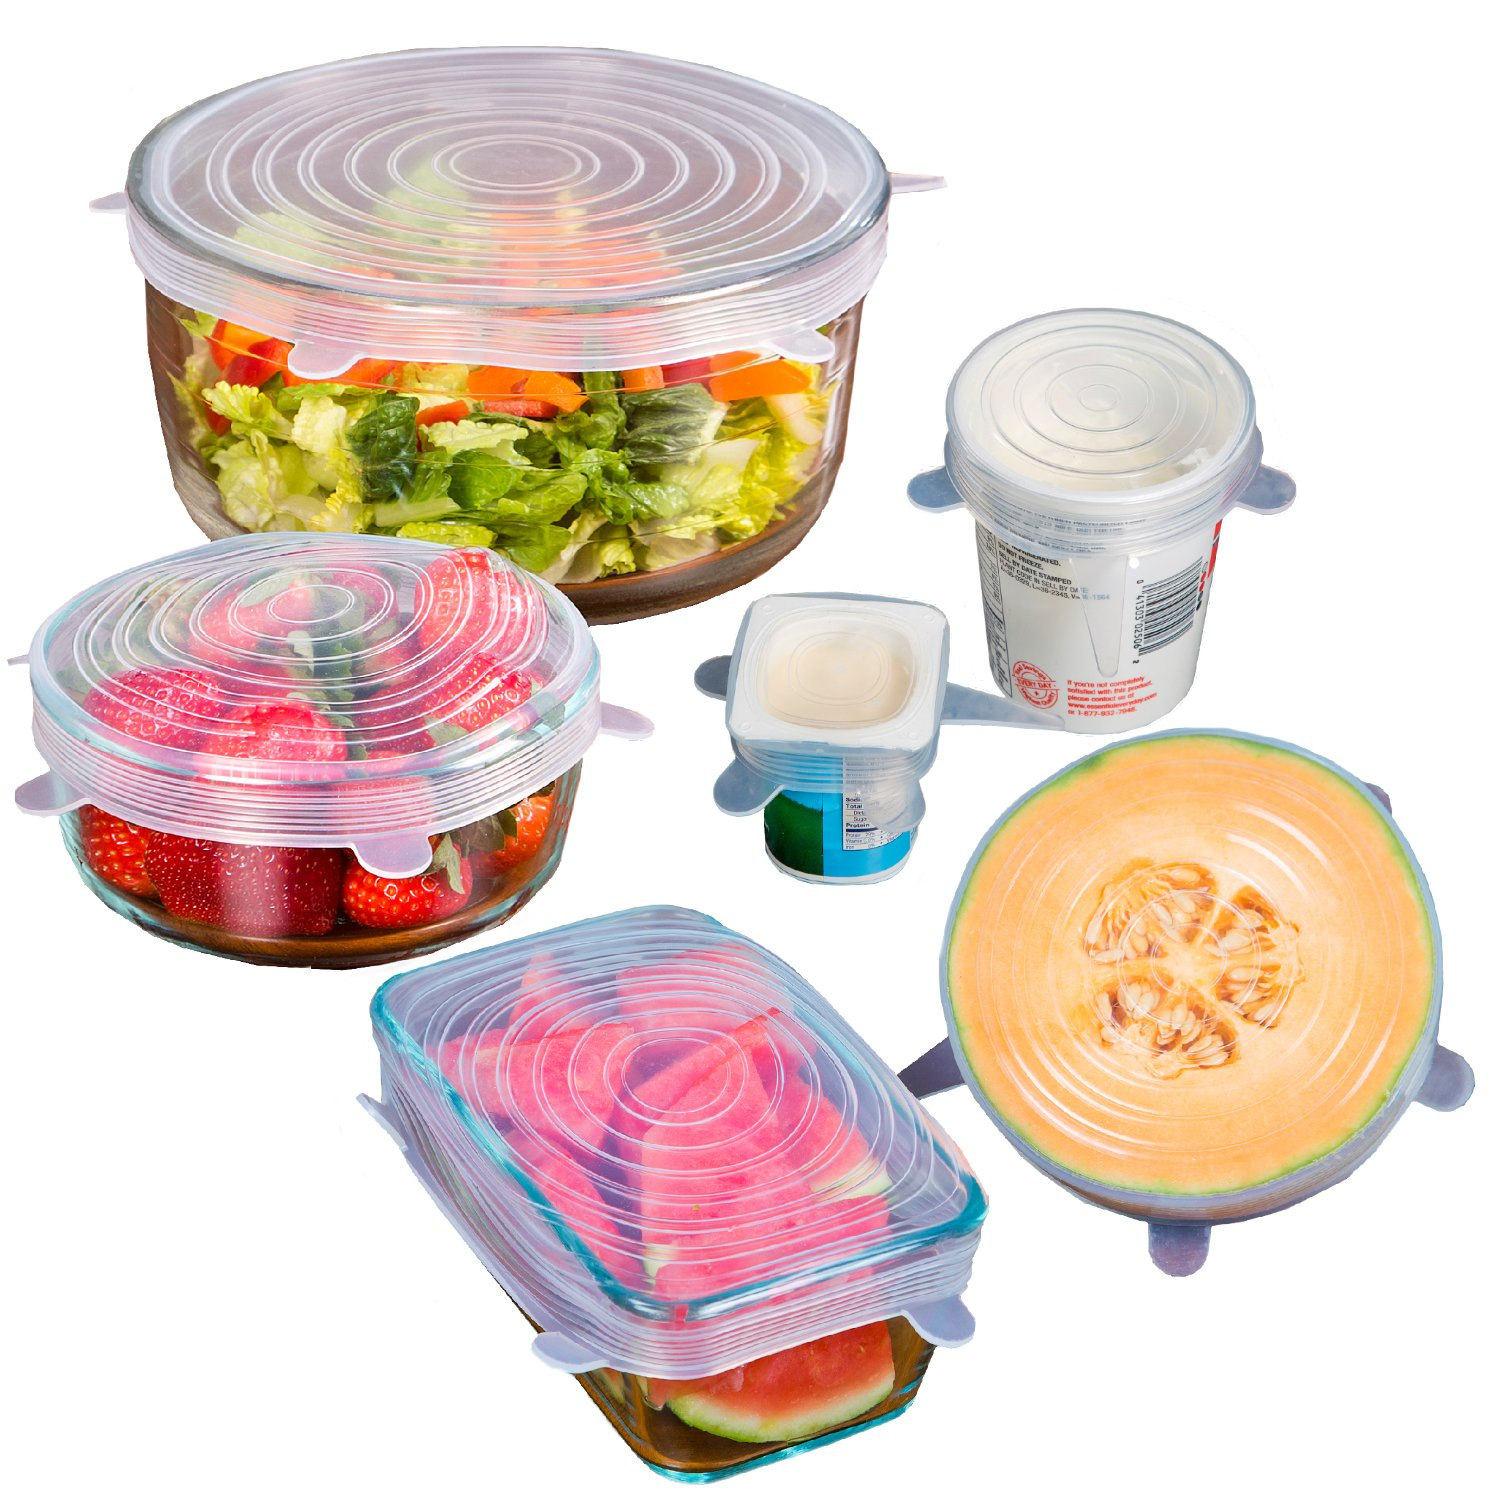 12 Premium Silicone Stretch Lids - BPA FREE - SAVE MONEY - Reusable, Durable, Heat Resistant, Dishwasher, Microwave and Oven Safe Covers.